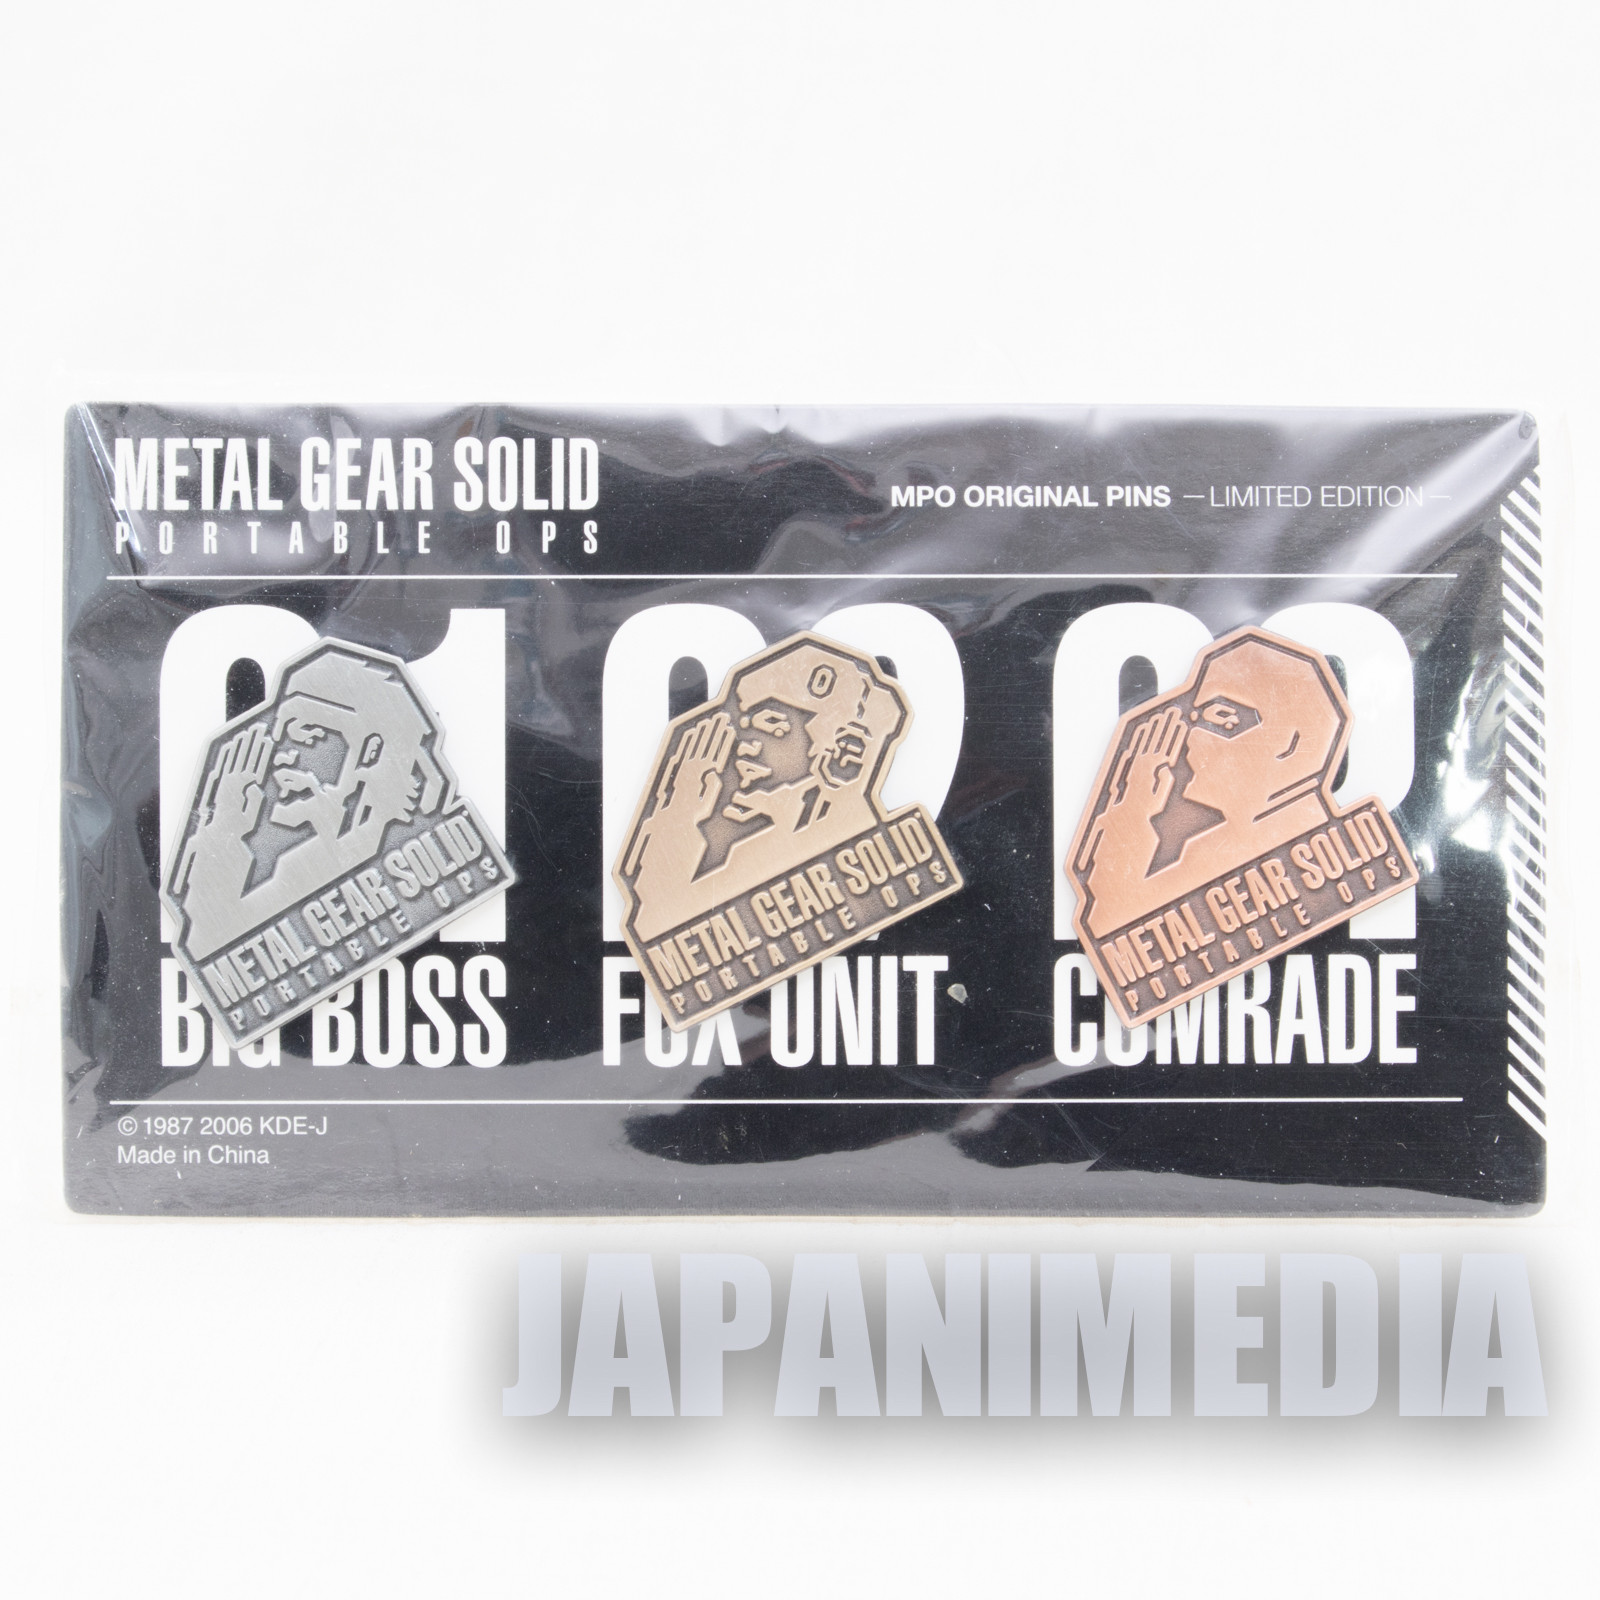 RARE! Metal Gear Solid Portable OPS Original Pins 3pc Set Limited JAPAN KONAMI